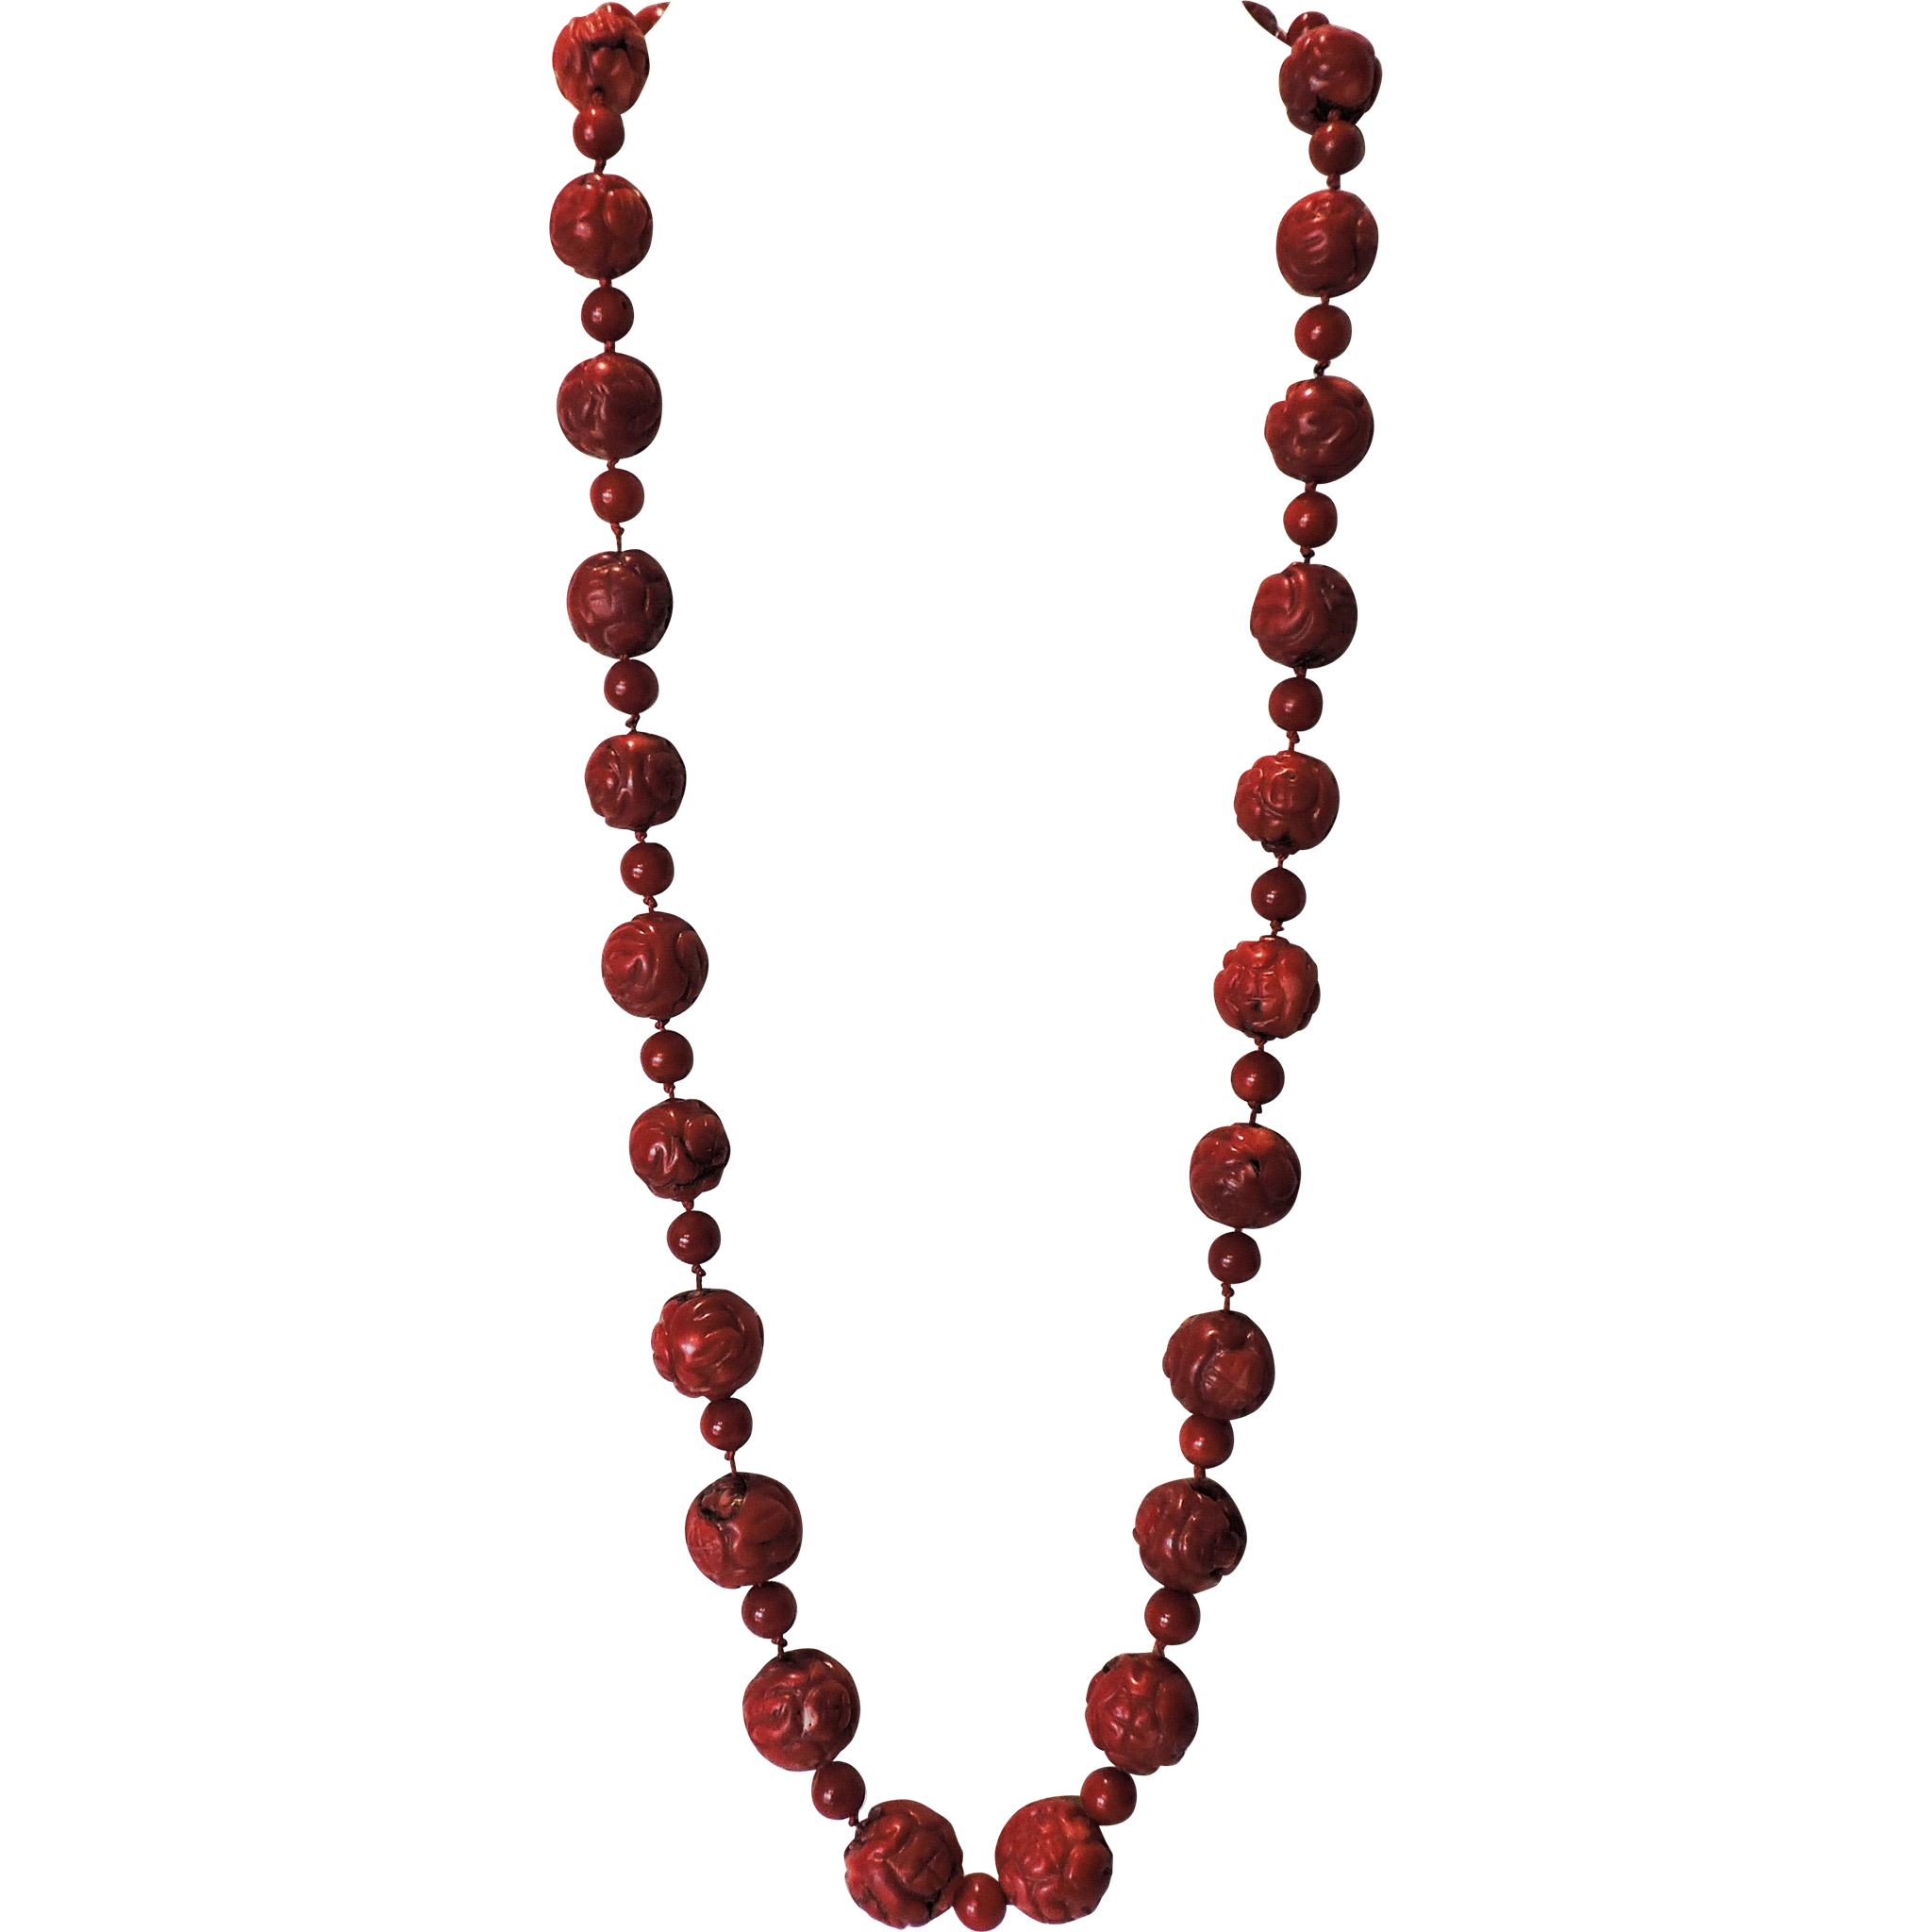 Beaded necklace png. Large red dark salmon